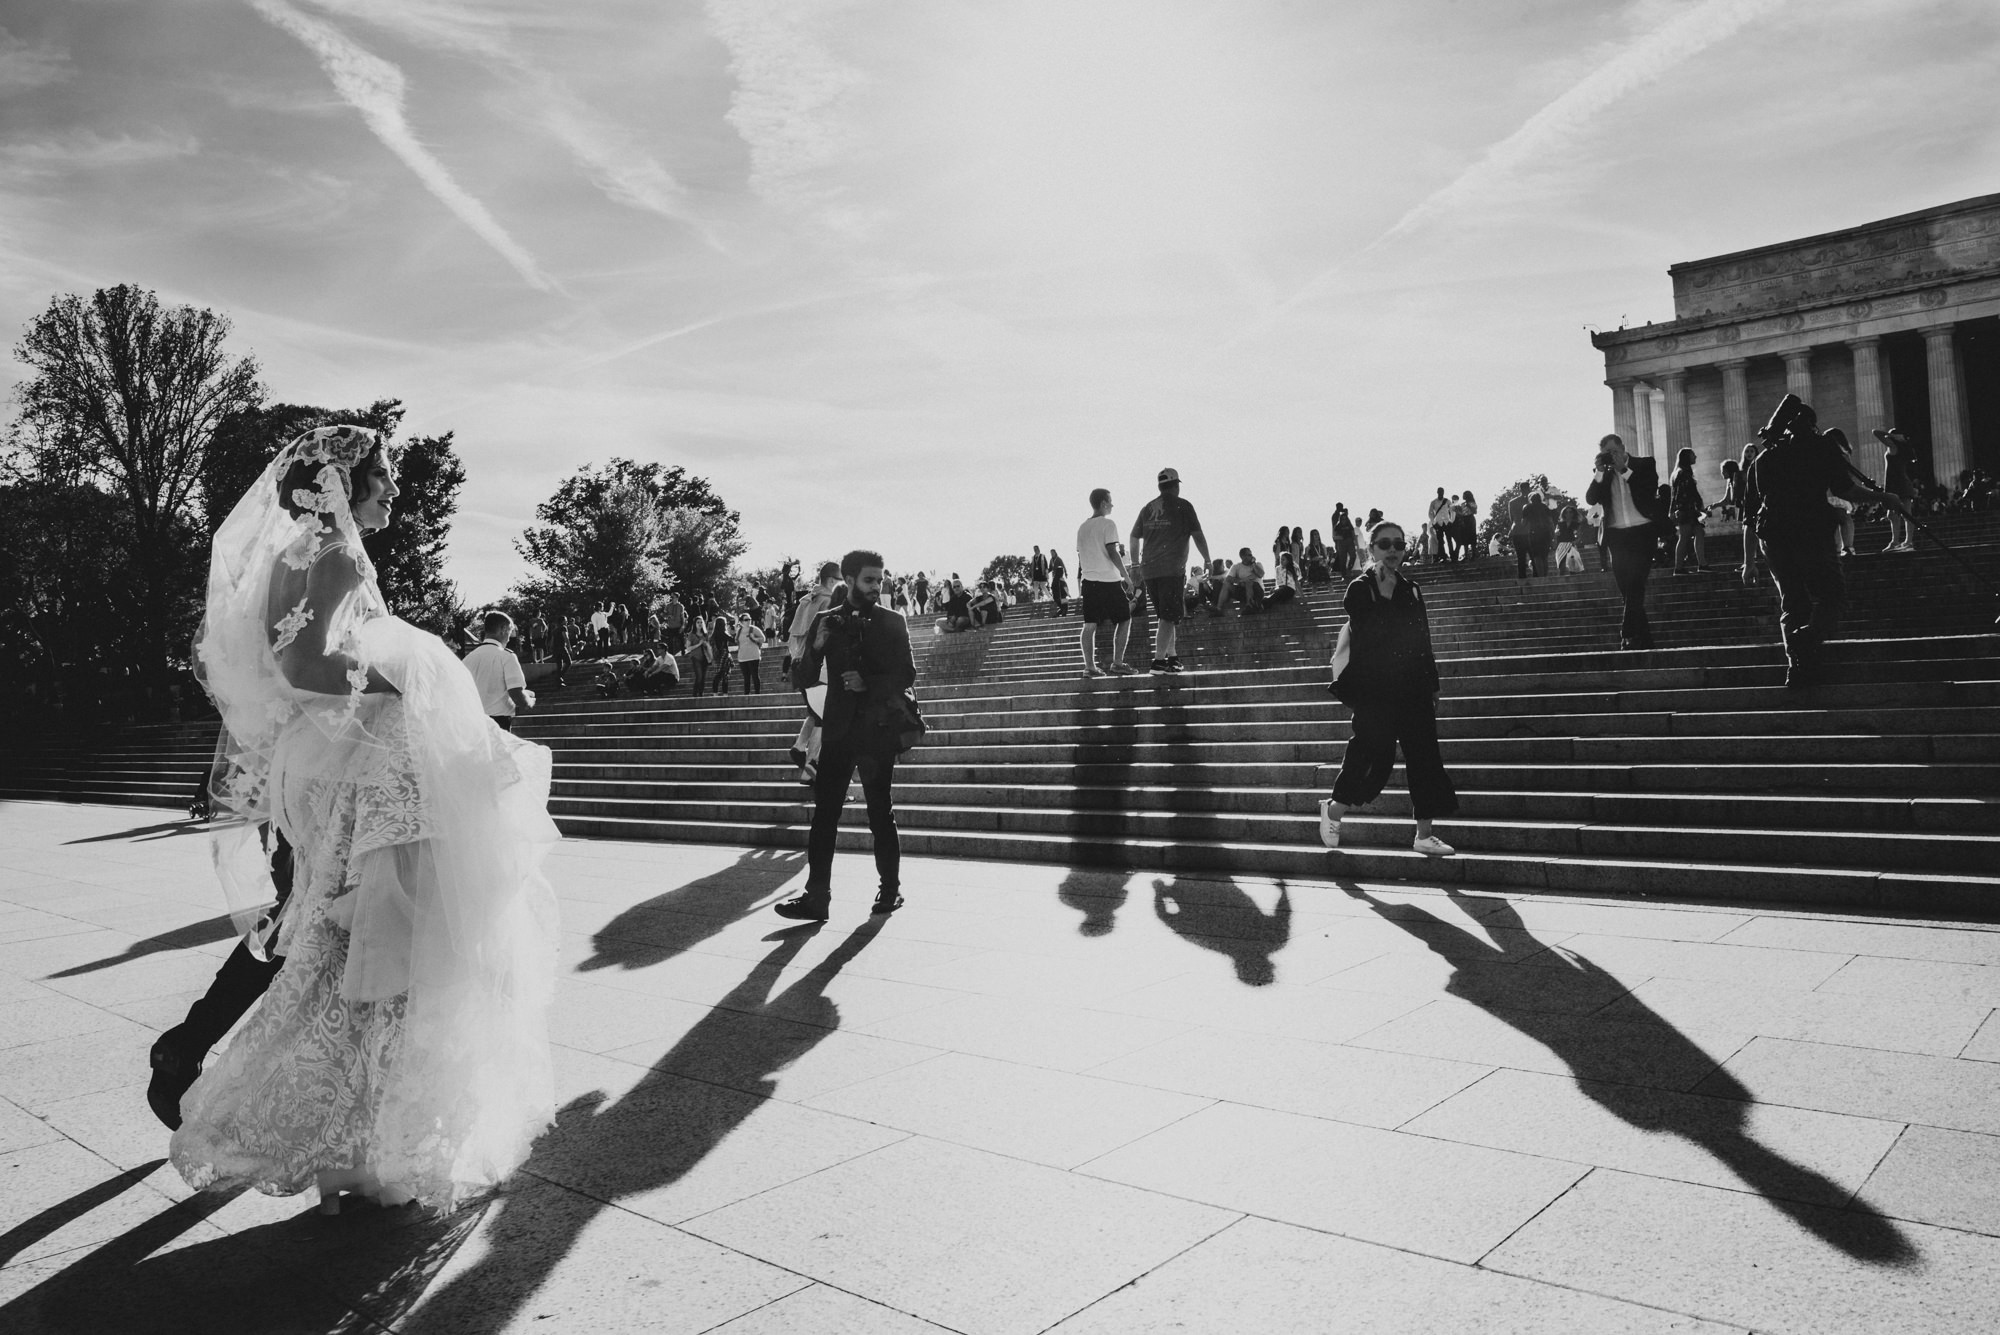 Lincoln-Memorial-luxury-Jewish-wedding-by-Gabriele-Stonyte-Photography.jpg